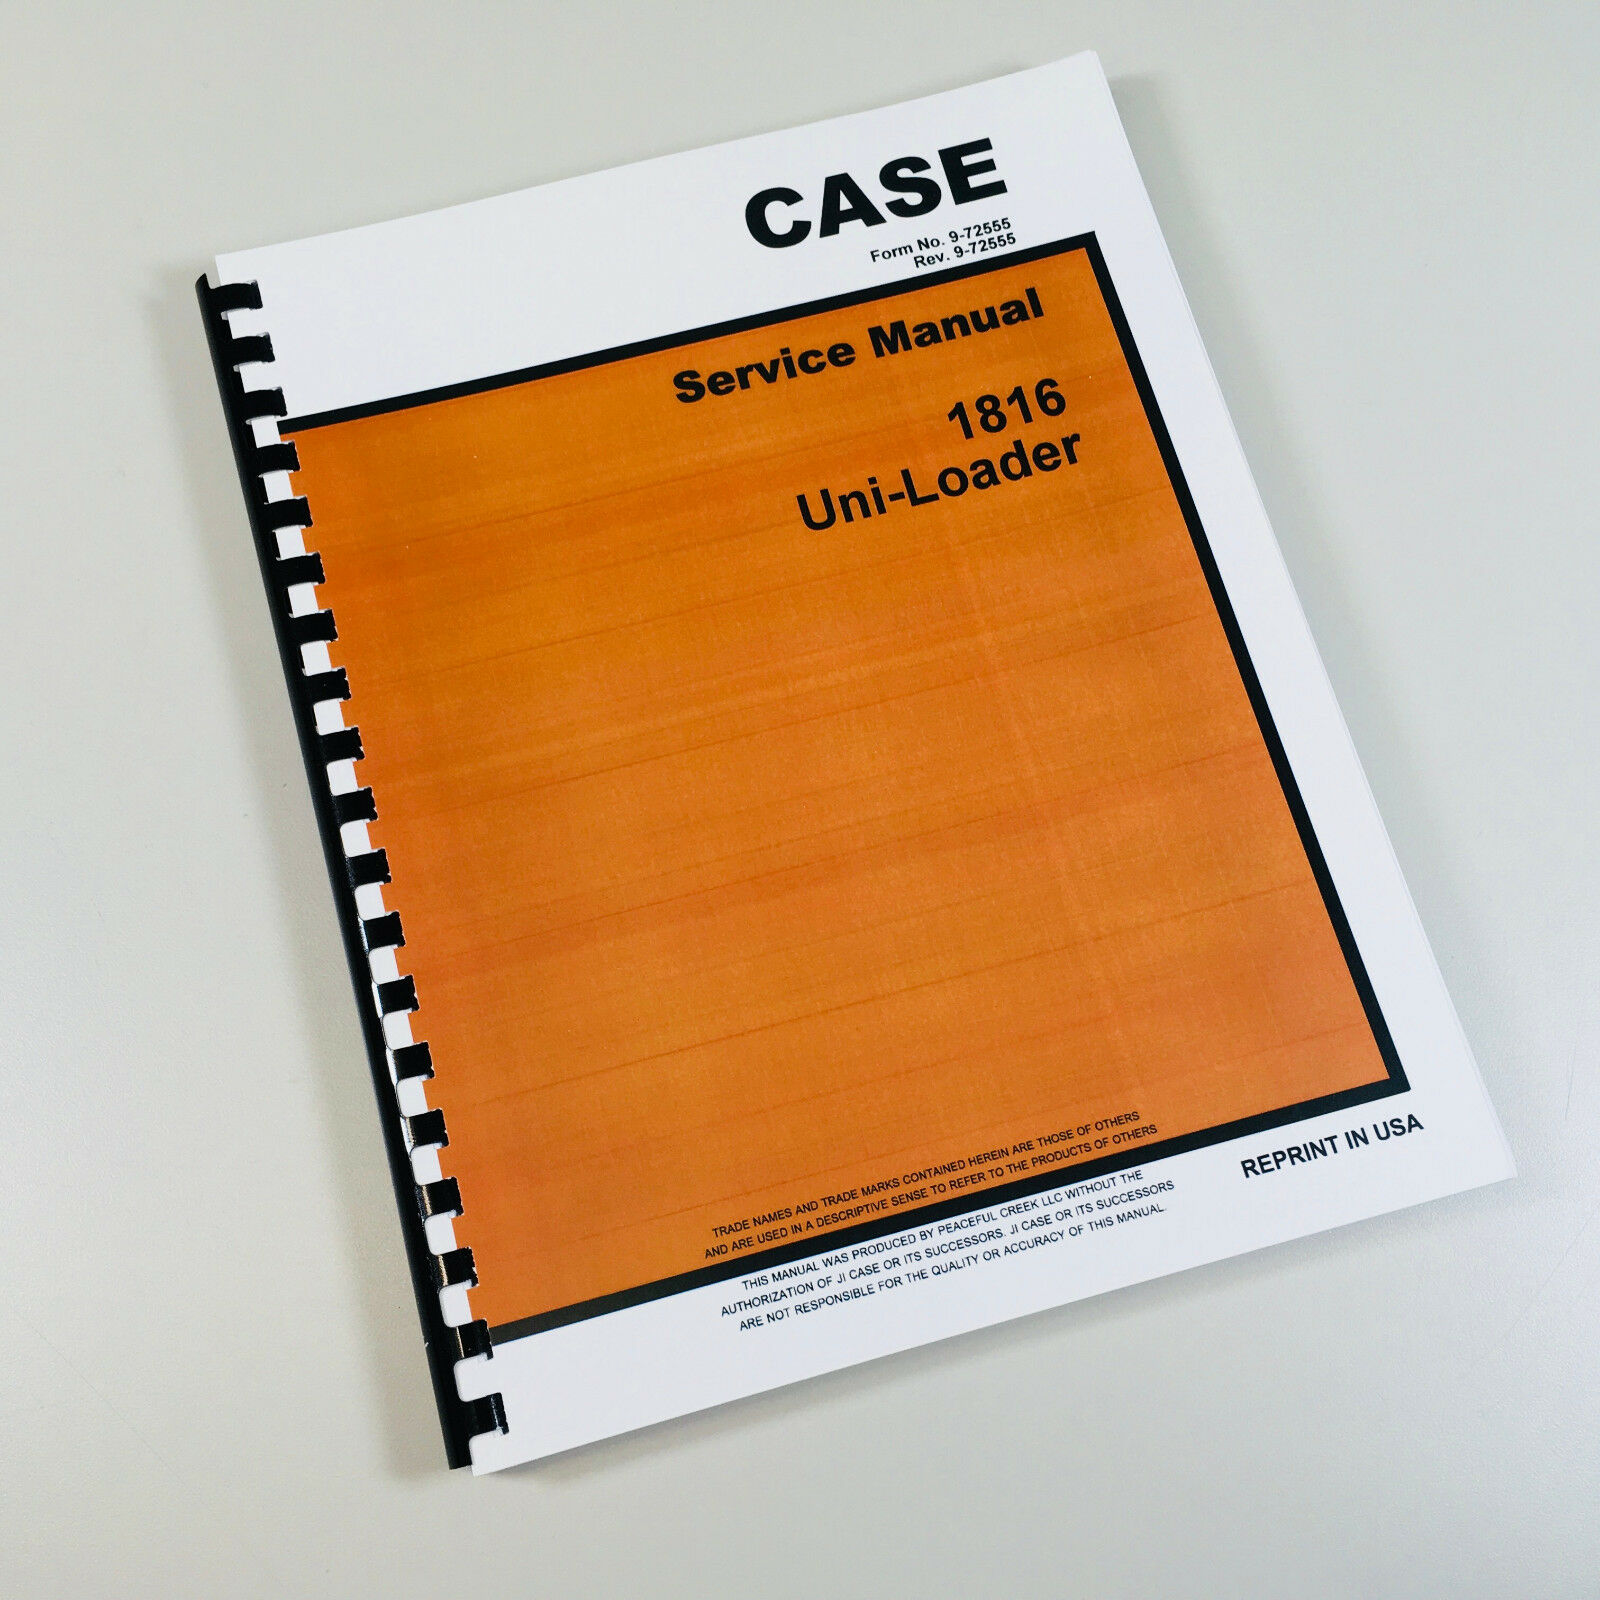 Case 1816 Uni Loader Skid Steer Service Repair Manual Technical Shop Book 1  of 9FREE Shipping ...